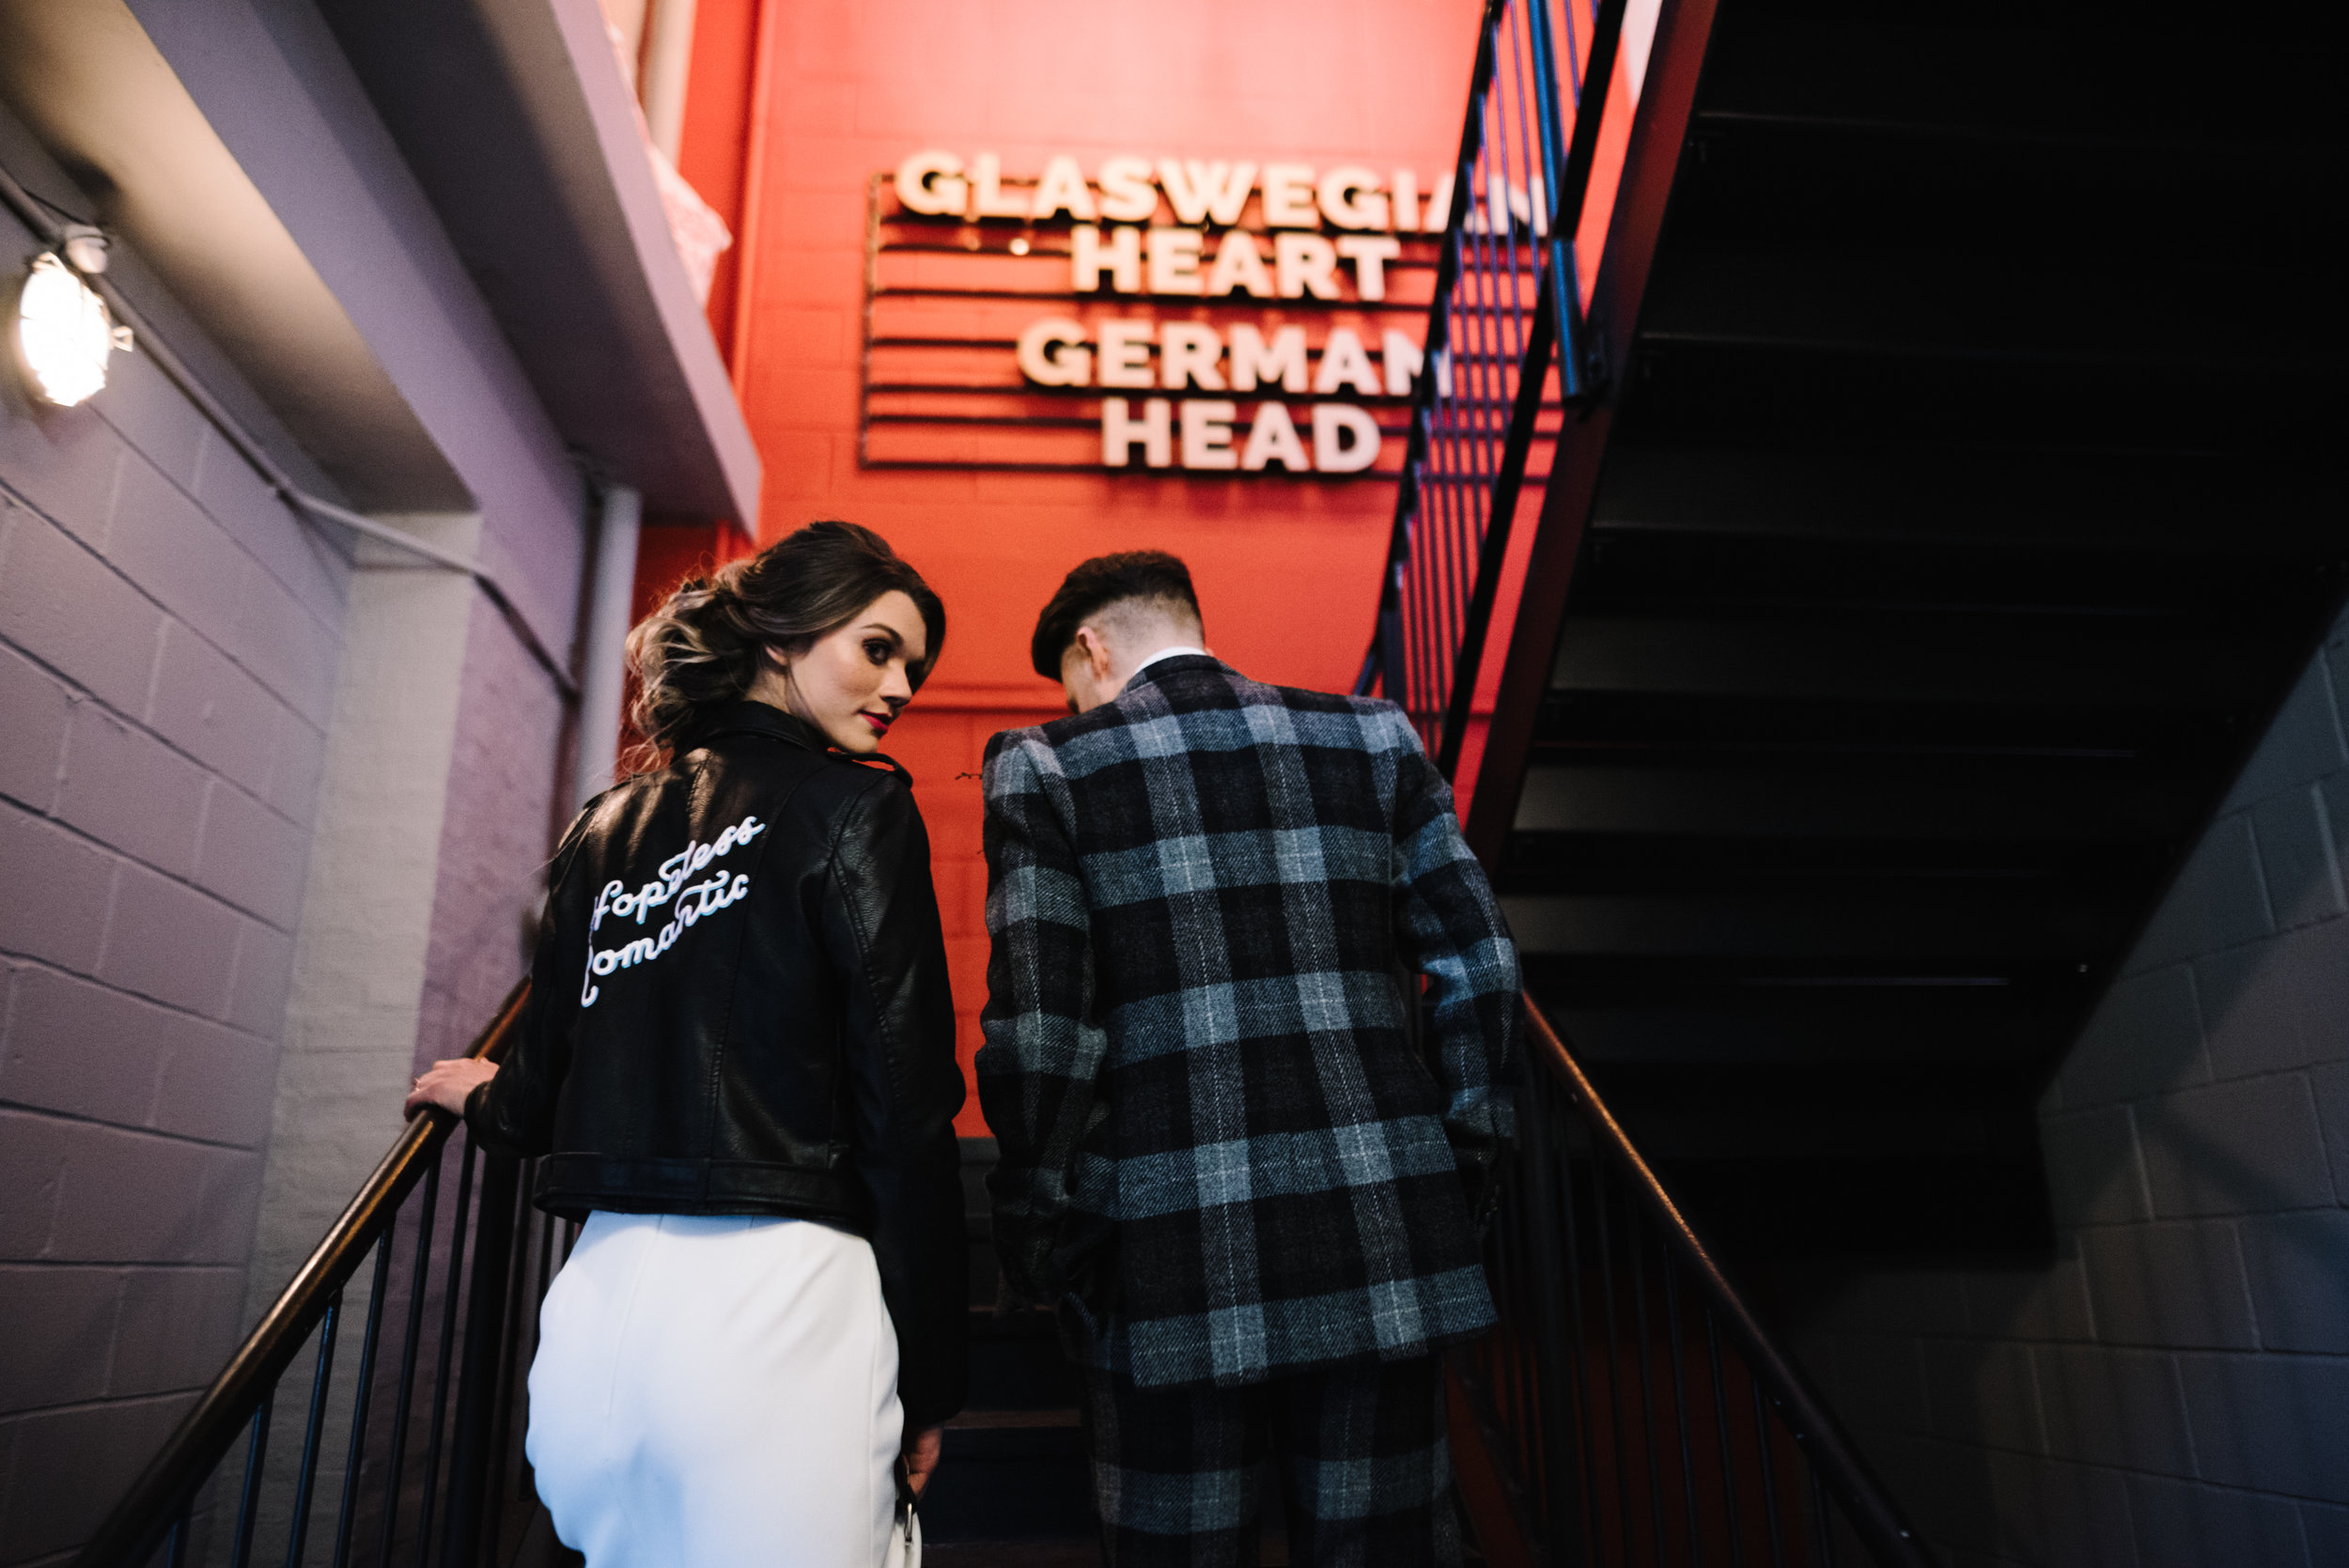 Modern Wedding Inspiration Shoot in Glasgow Brewery With a Frill Installation, Candy Floss and Neon 00050.jpg